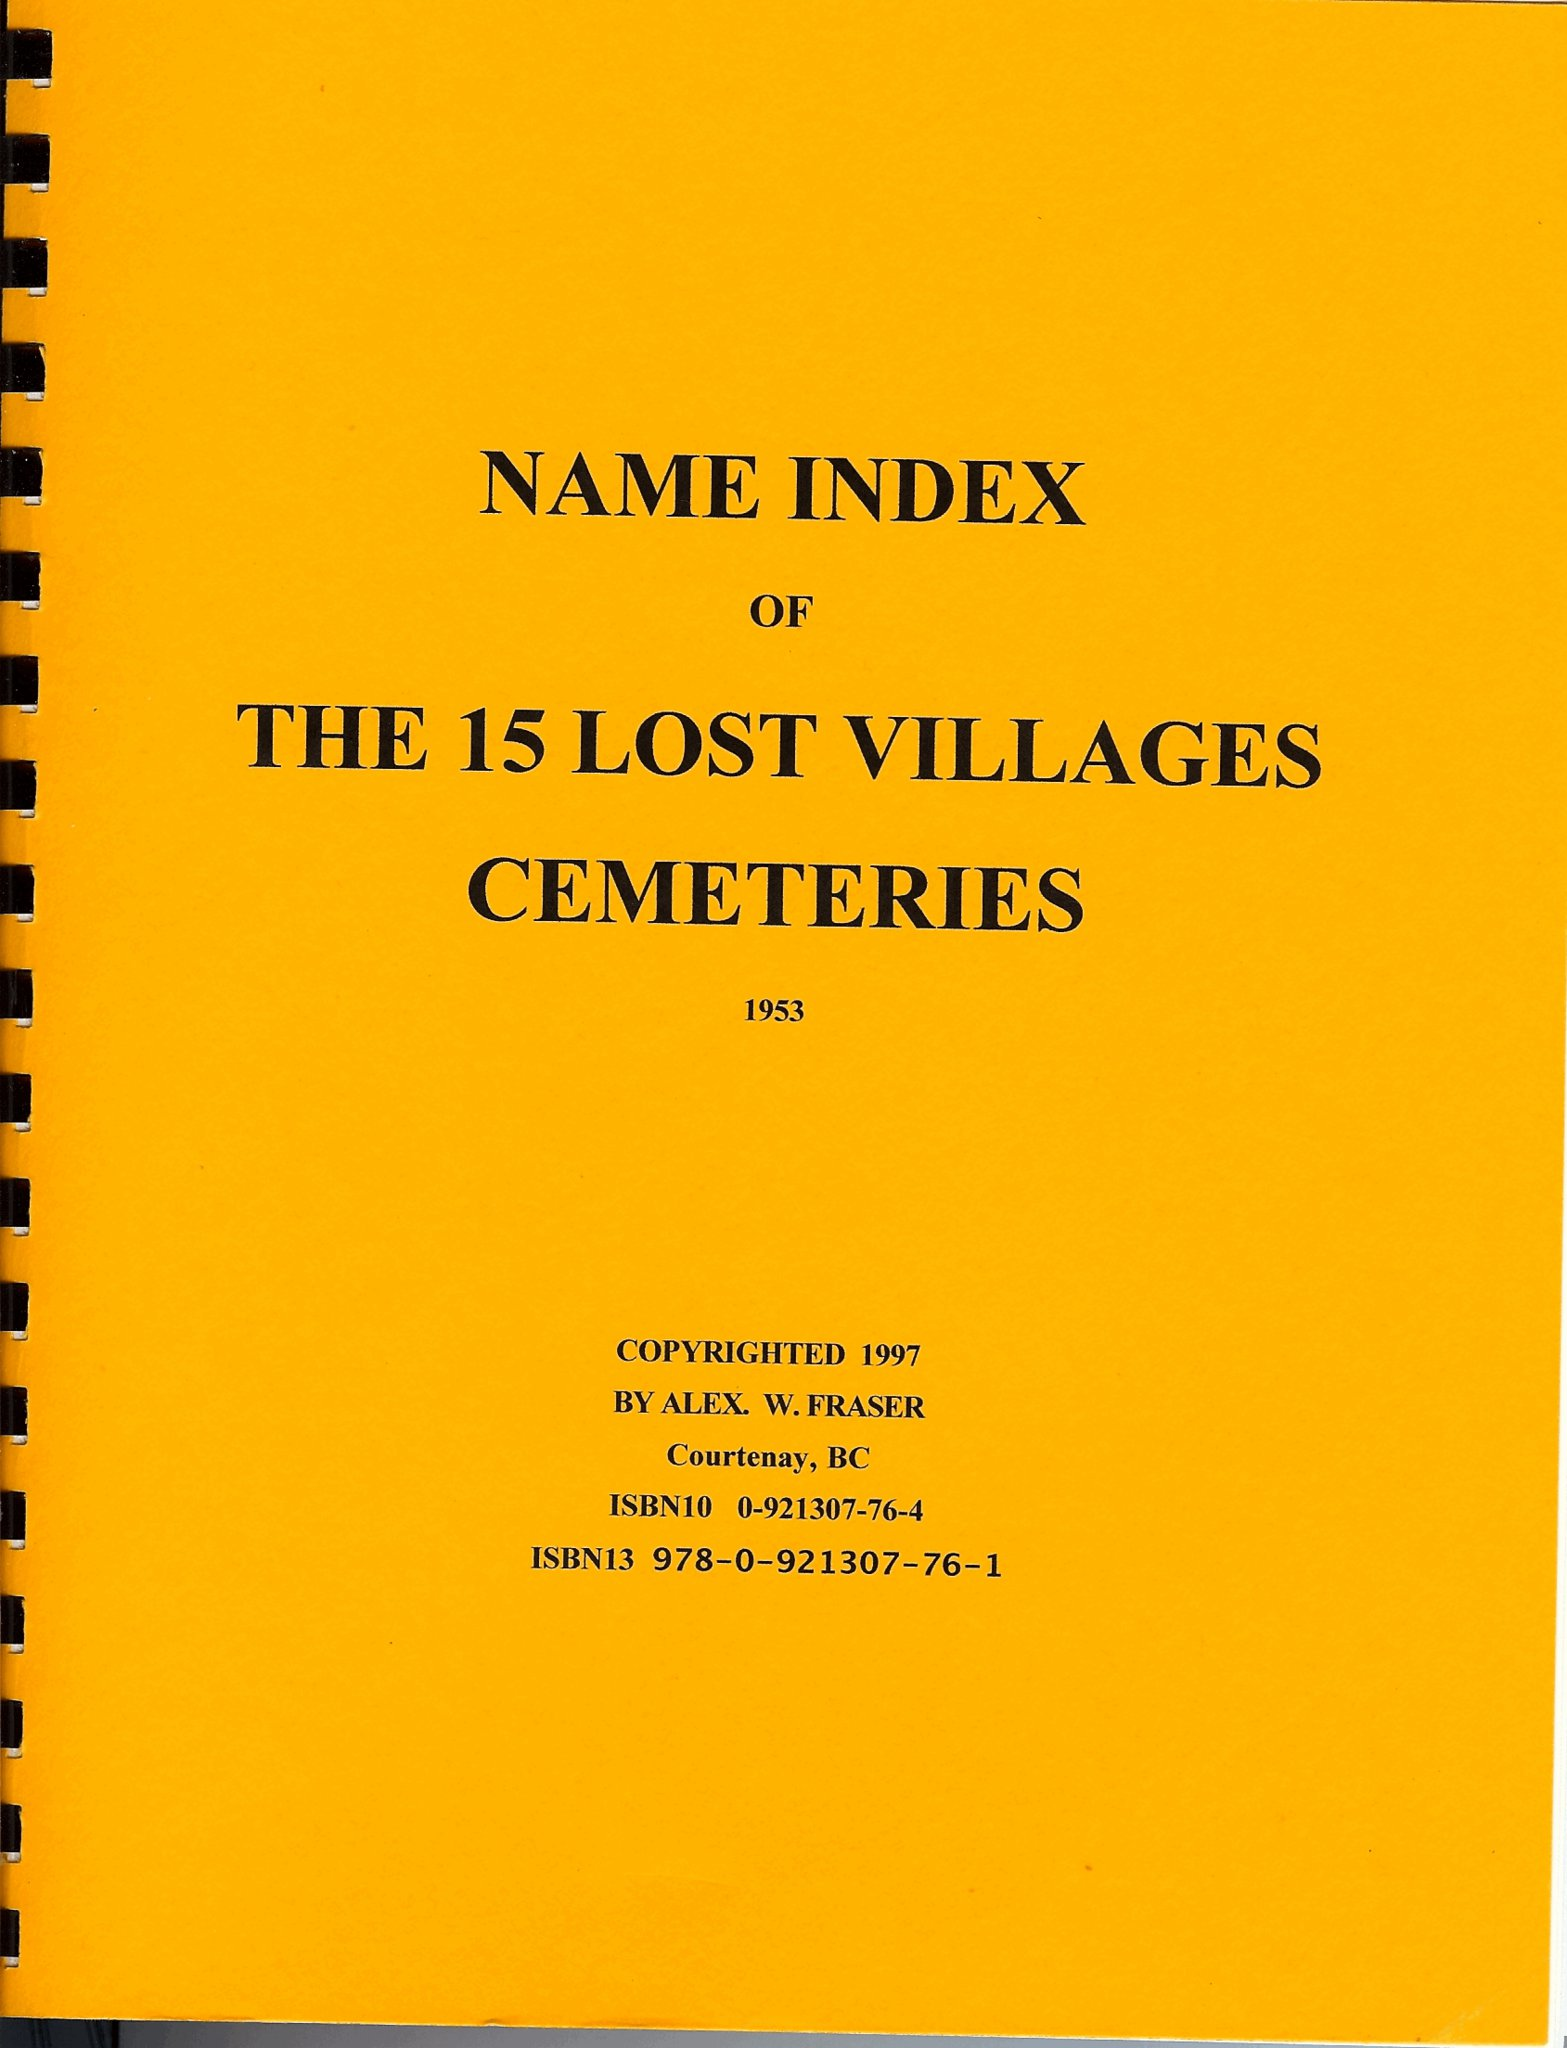 LostVillages